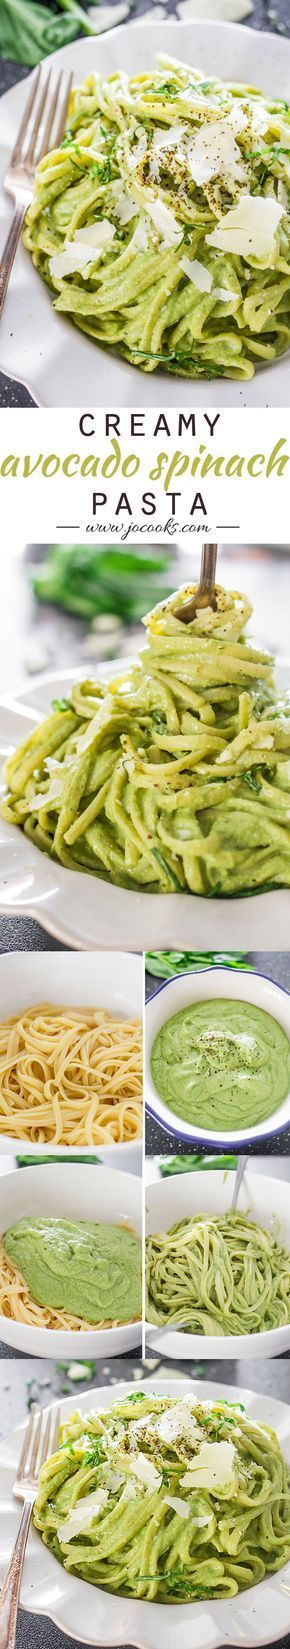 Creamy Avocado and Spinach Pasta. Make with zucchini noodles for paleo. Looks too good! #fitgirlcode #healthy #cleaneating